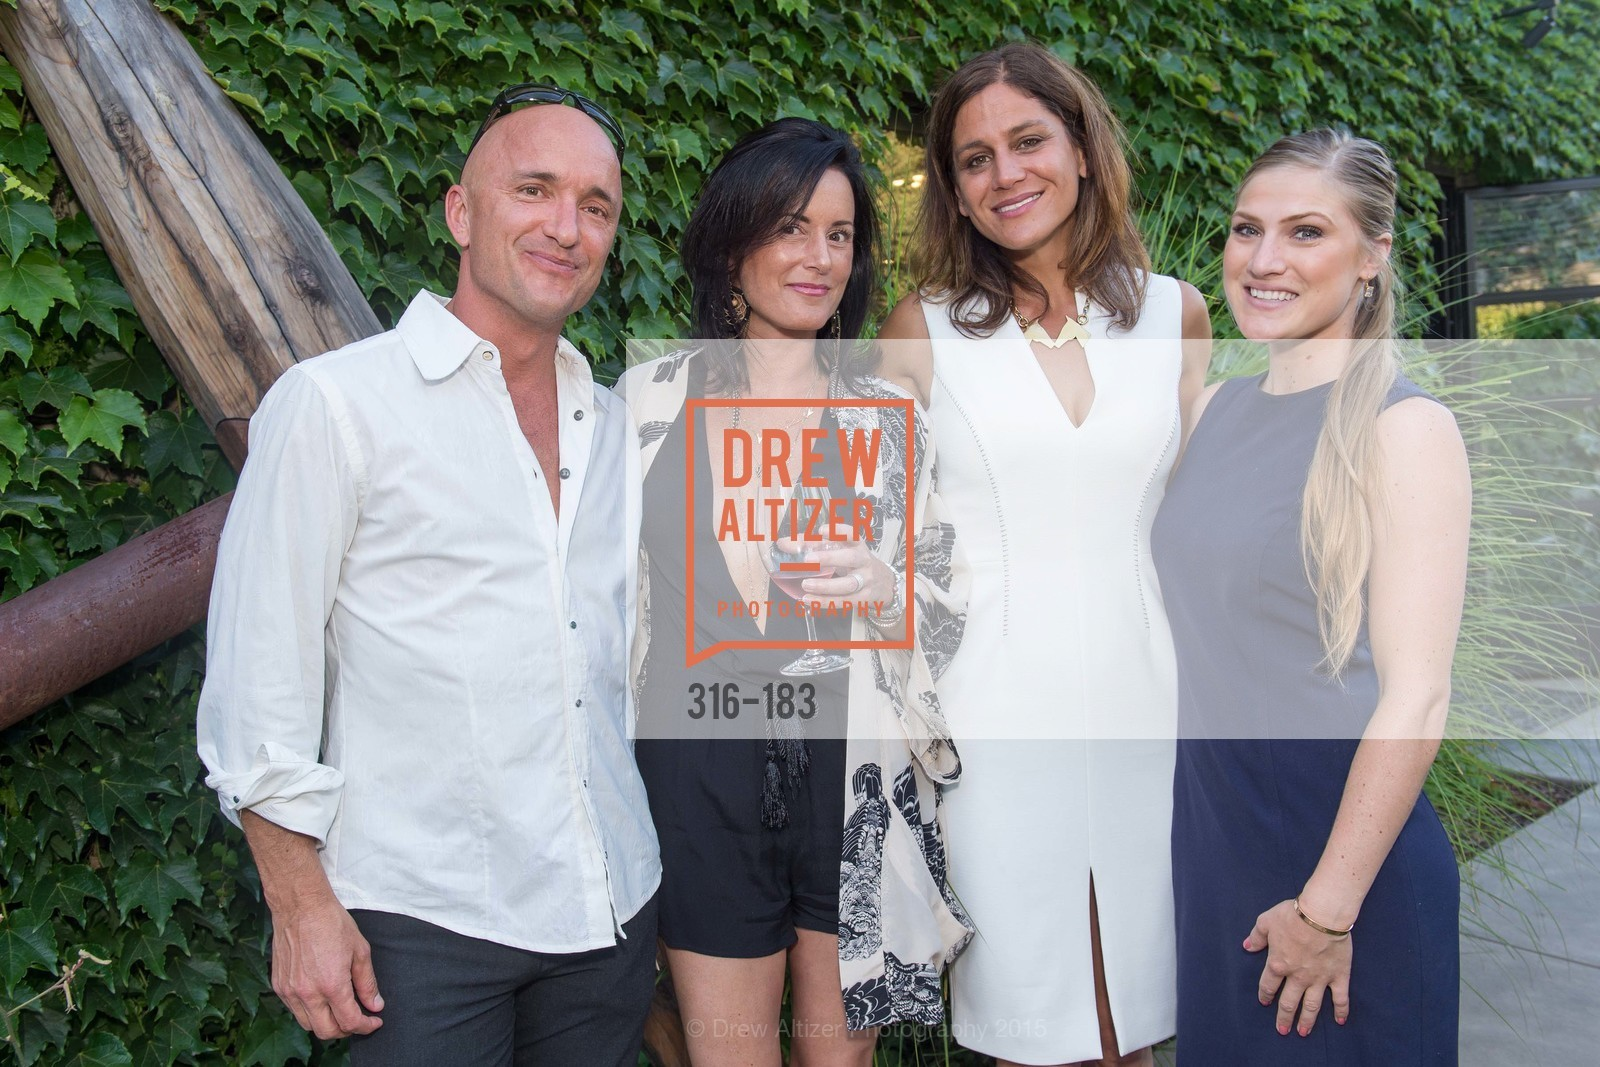 David DuPont, Tara Schon, Elizabeth Welborn, Sarah Everton, Oyster Cup Polo Tournament Preview Party Hosted by Cerro Pampa Polo Club and Stick & Ball, Ma(i)sonry. 6711 Washington St, June 25th, 2015,Drew Altizer, Drew Altizer Photography, full-service agency, private events, San Francisco photographer, photographer california